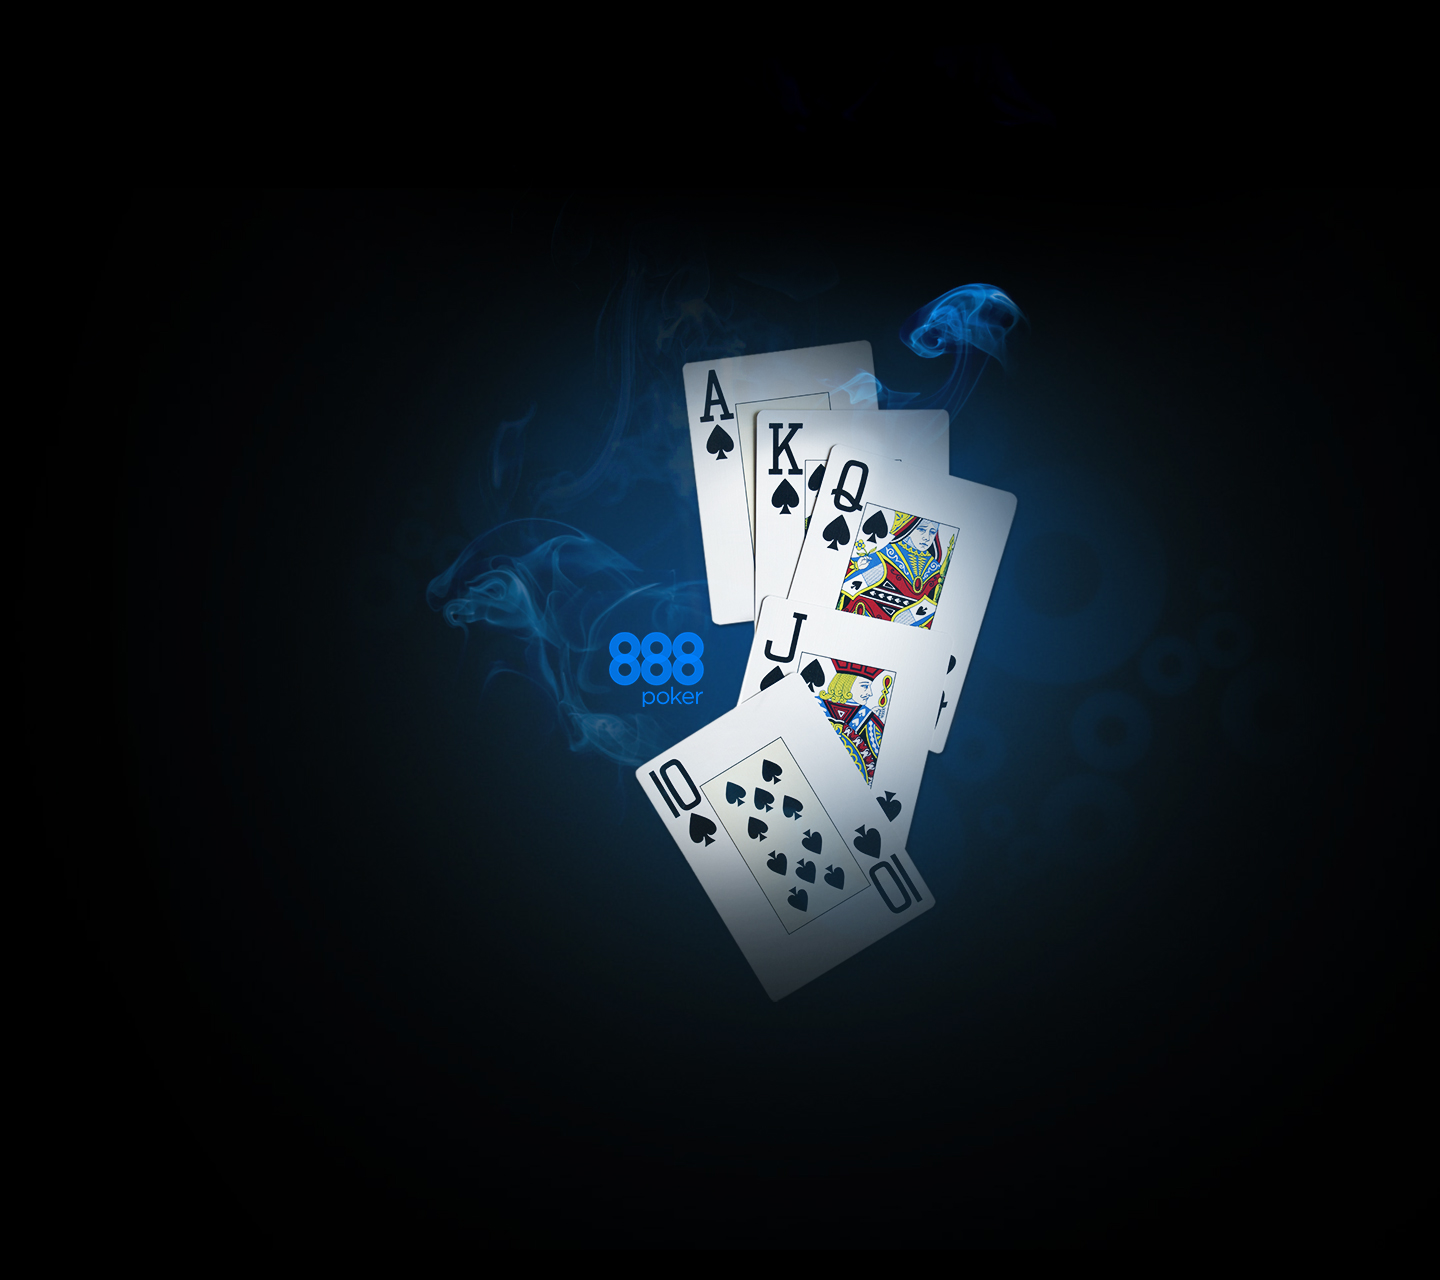 download 888 poker mobile